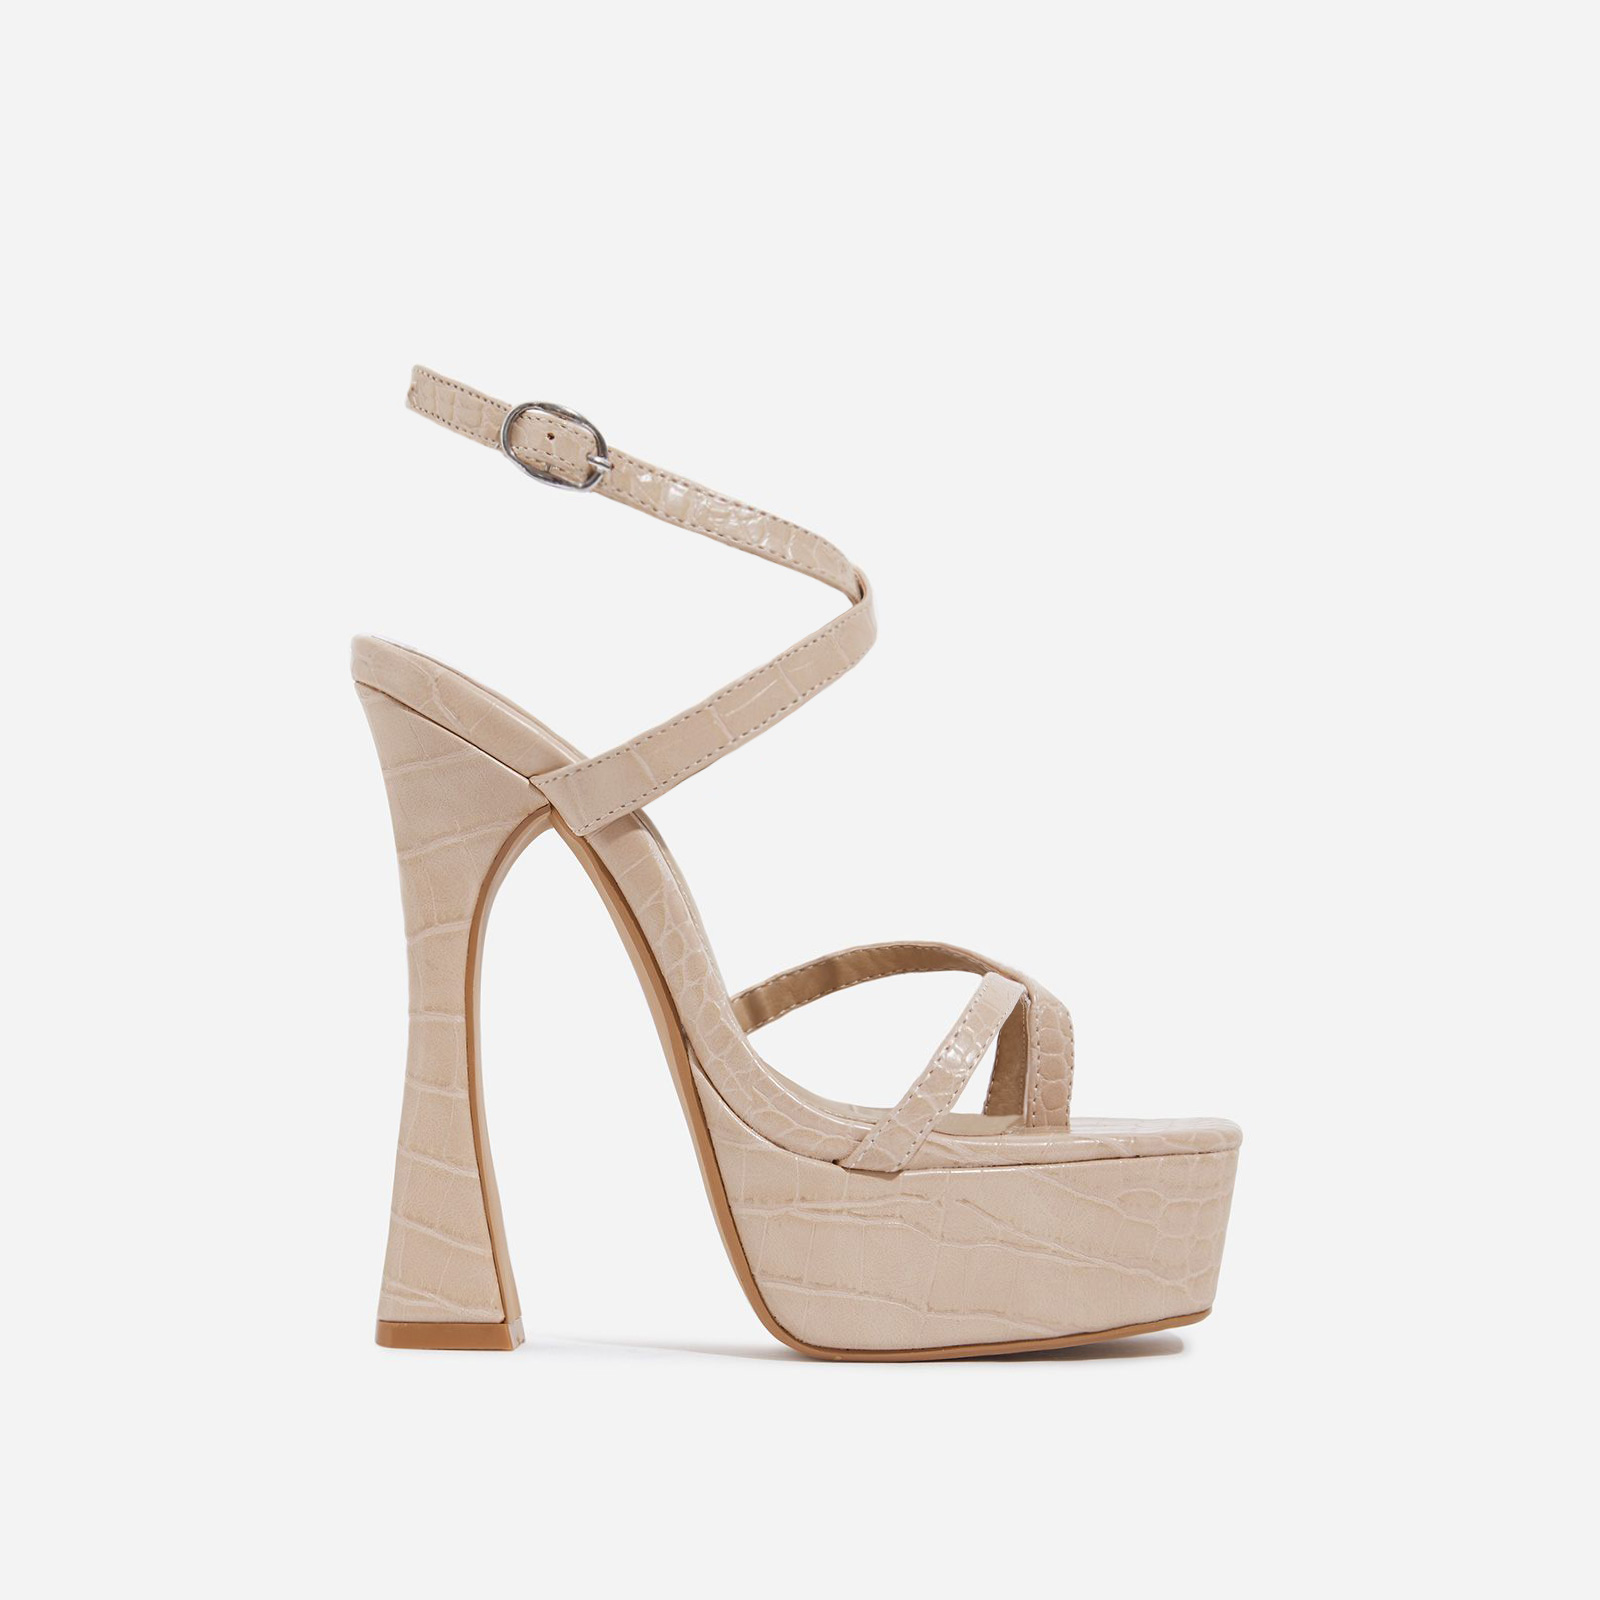 Vox Square Toe Platform Flared Heel In Nude Croc Print Faux Leather